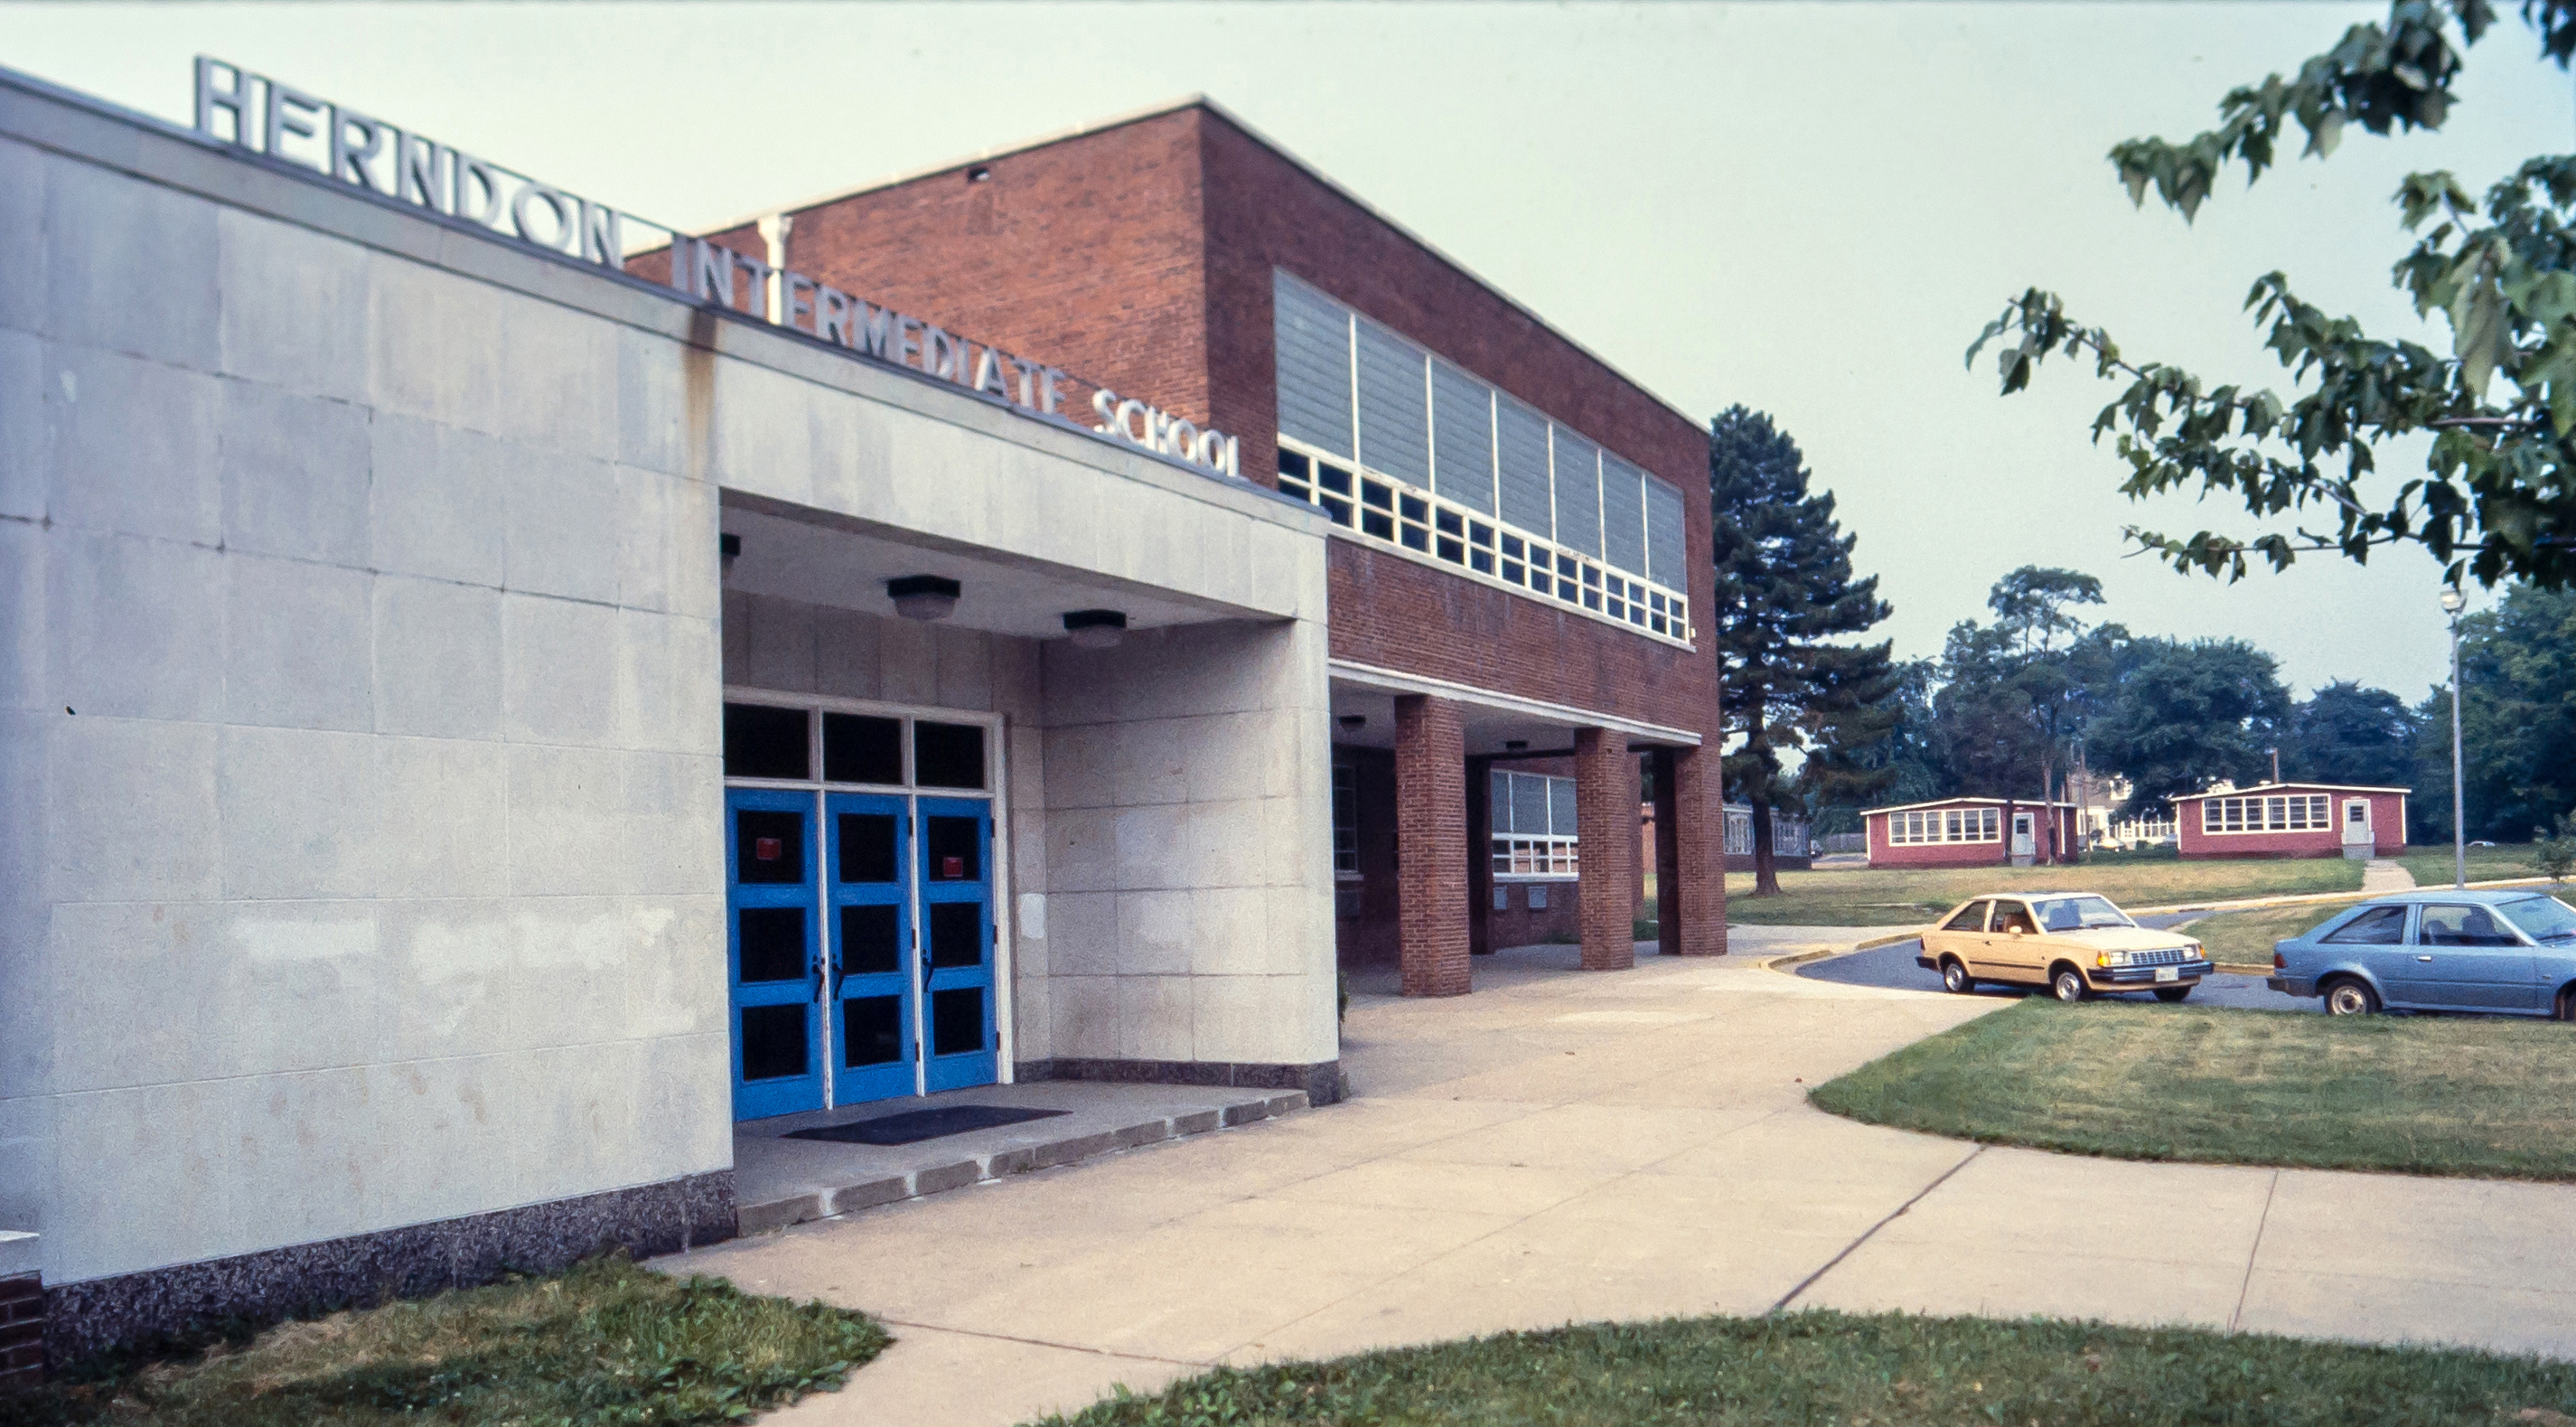 Color photograph of Herndon Middle School taken in the mid-1980s. The old 1927 building has been torn down and two mobile classrooms can be seen in the distance. The main entrance to the building is on the left.